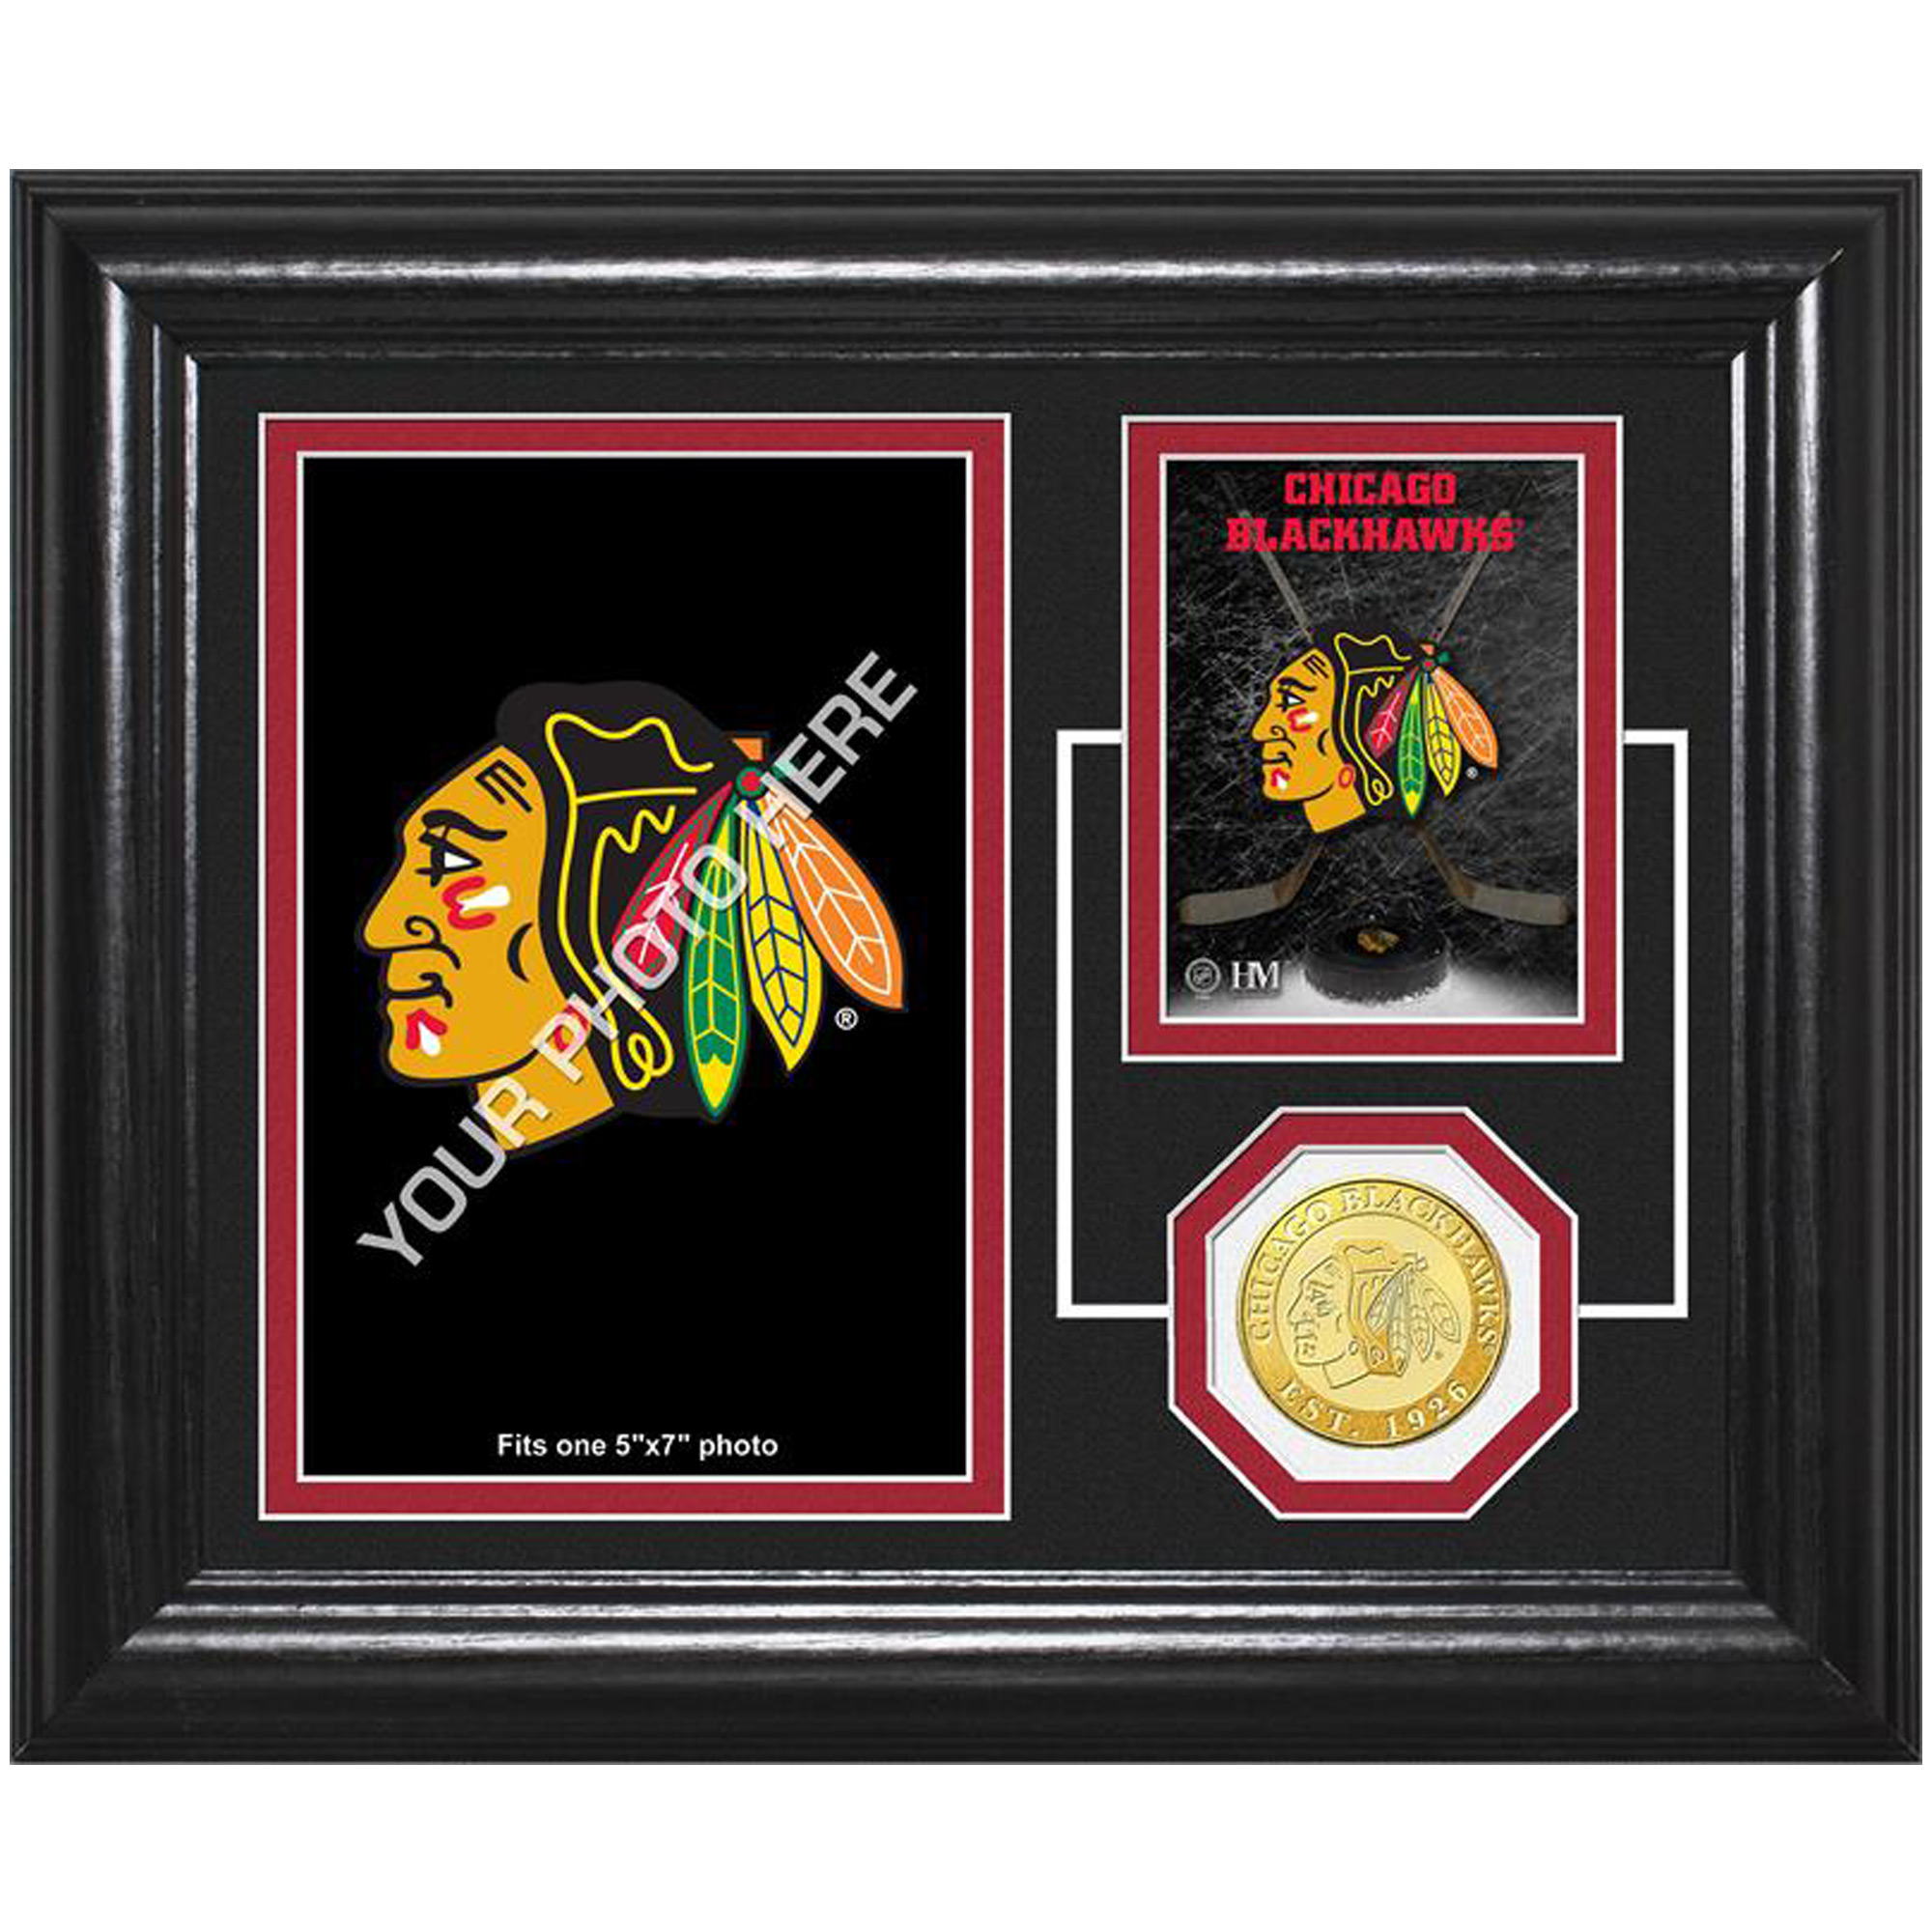 "Chicago Blackhawks Highland Mint Fan Memories 10"" x 12"" Bronze Coin Desktop Photo Mint - No Size"